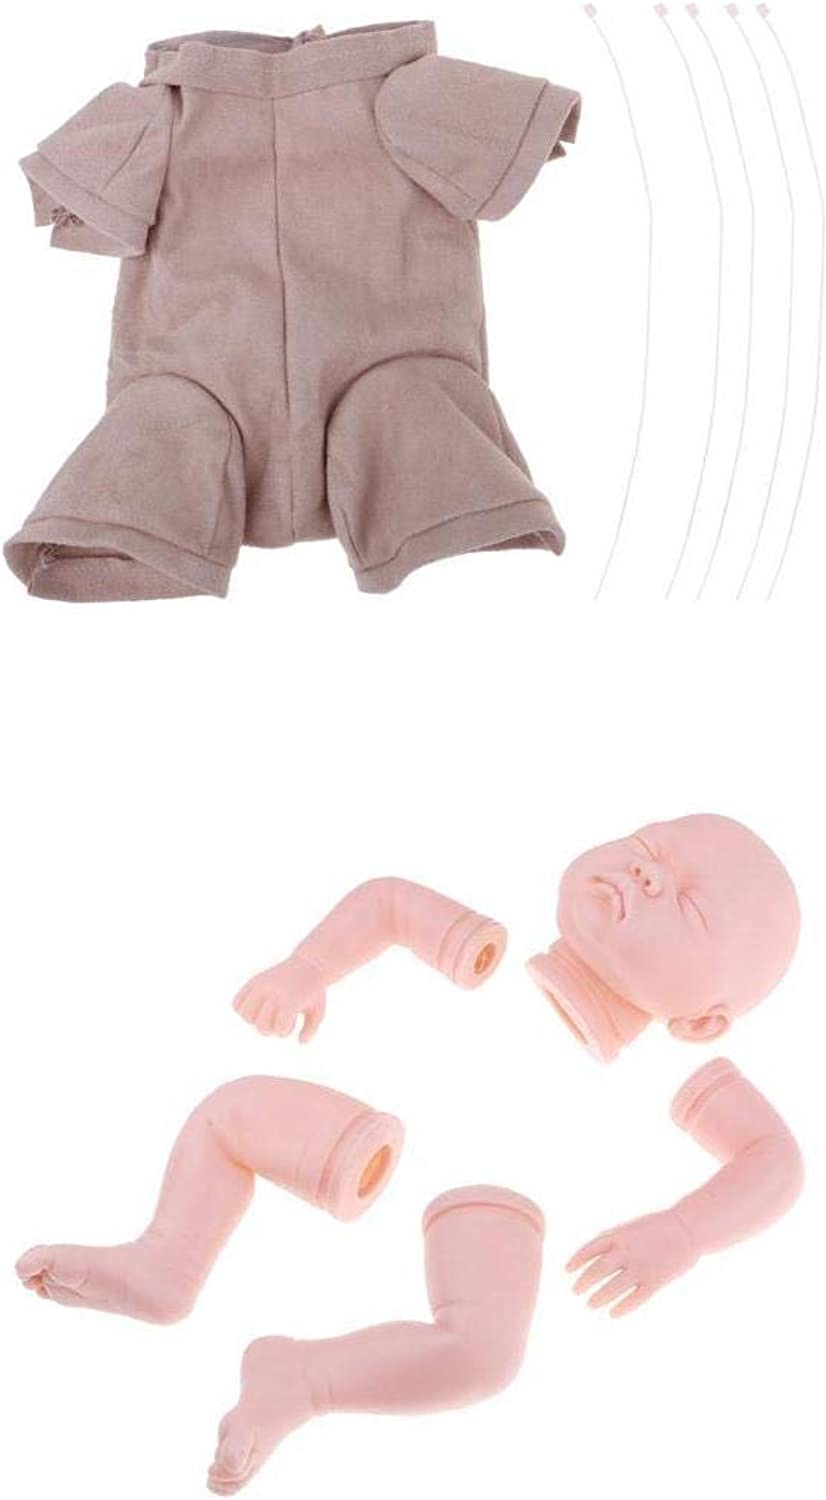 Prettyia Real Touch Large Silicone 22'' Reborn Kit Sleeping Baby Doll Blank Head Limb Mold and Cloth Body Set